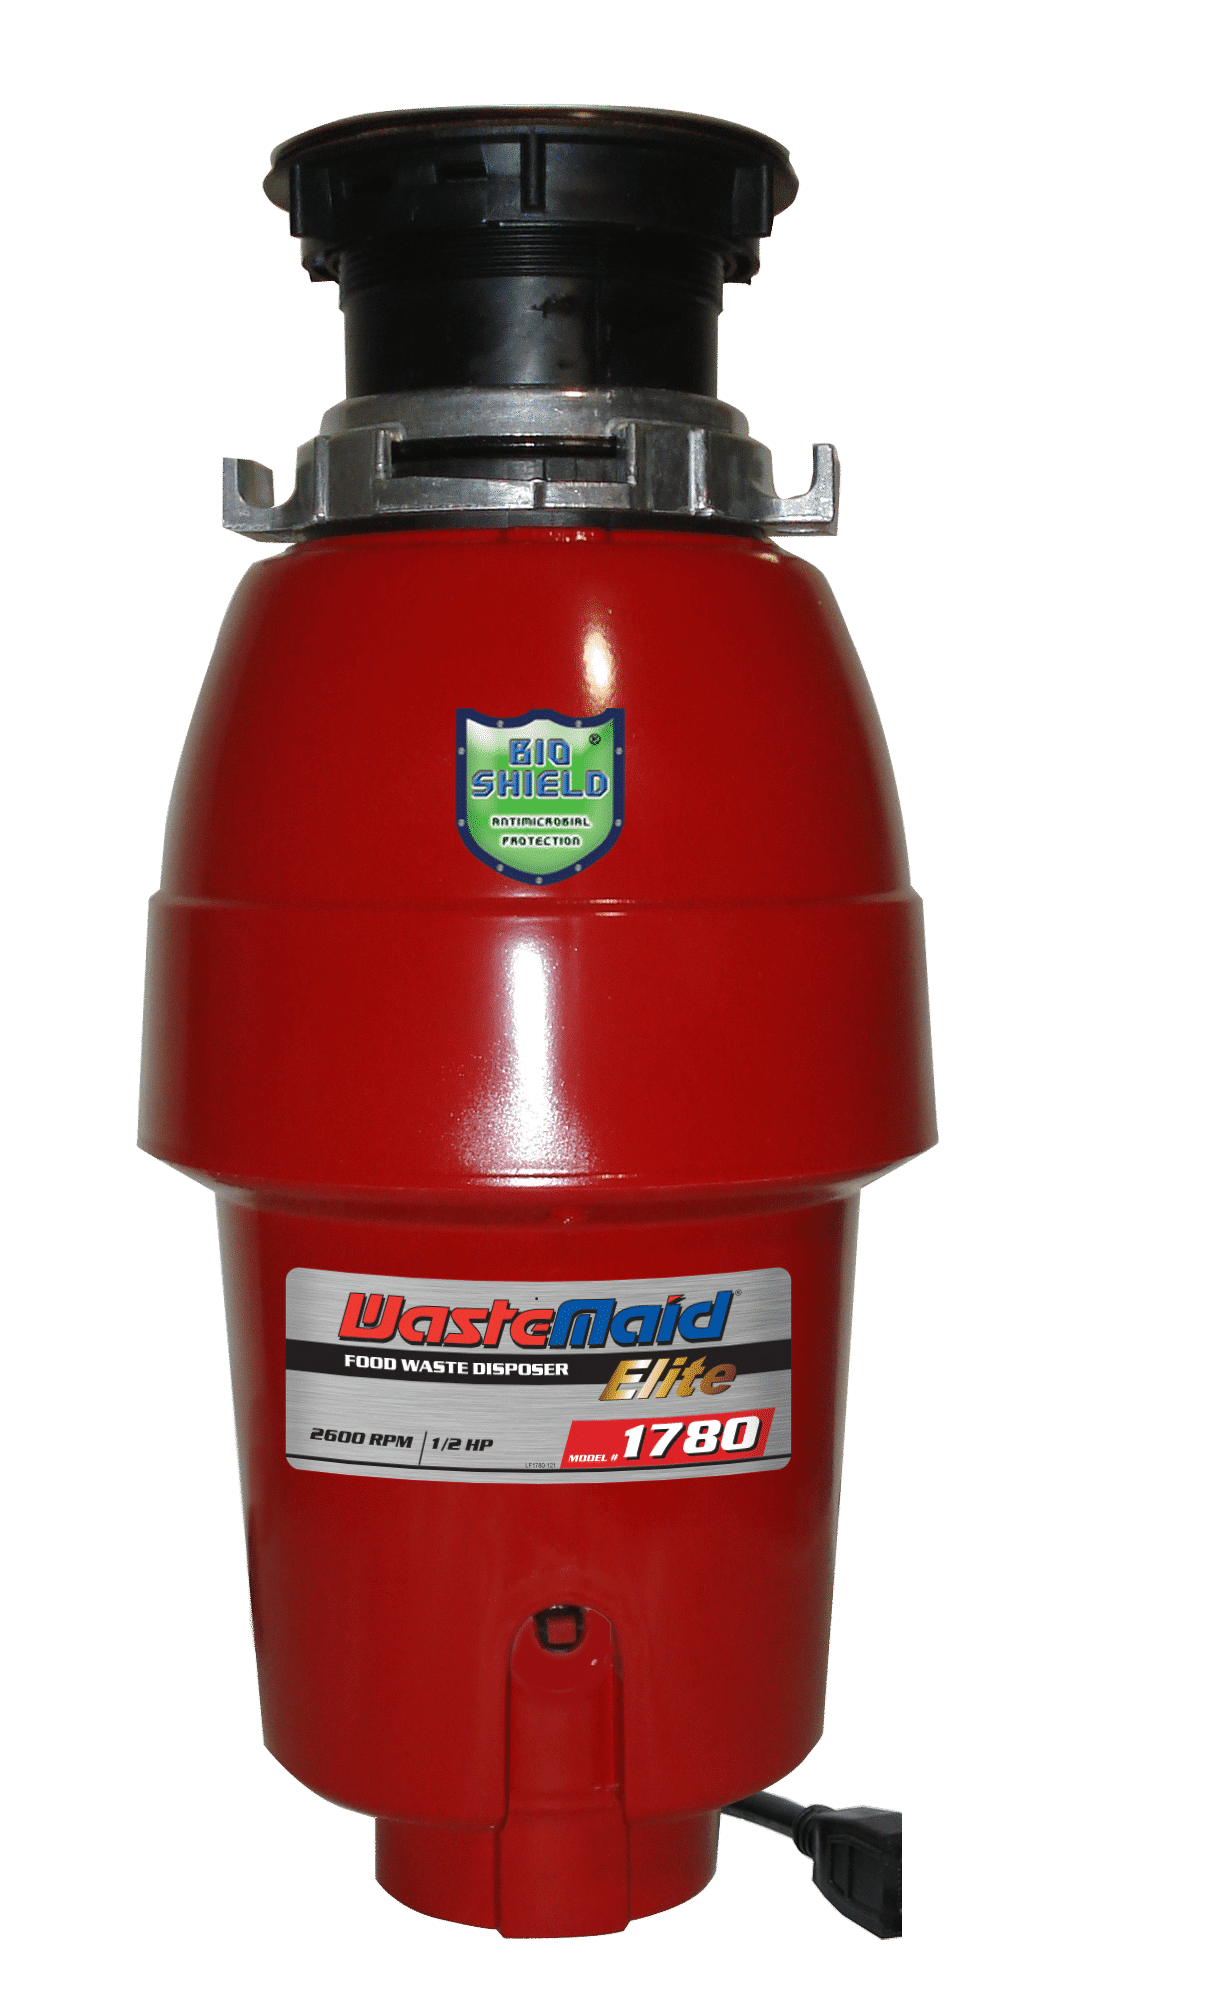 WasteMaid Elite 1780 Air Switch